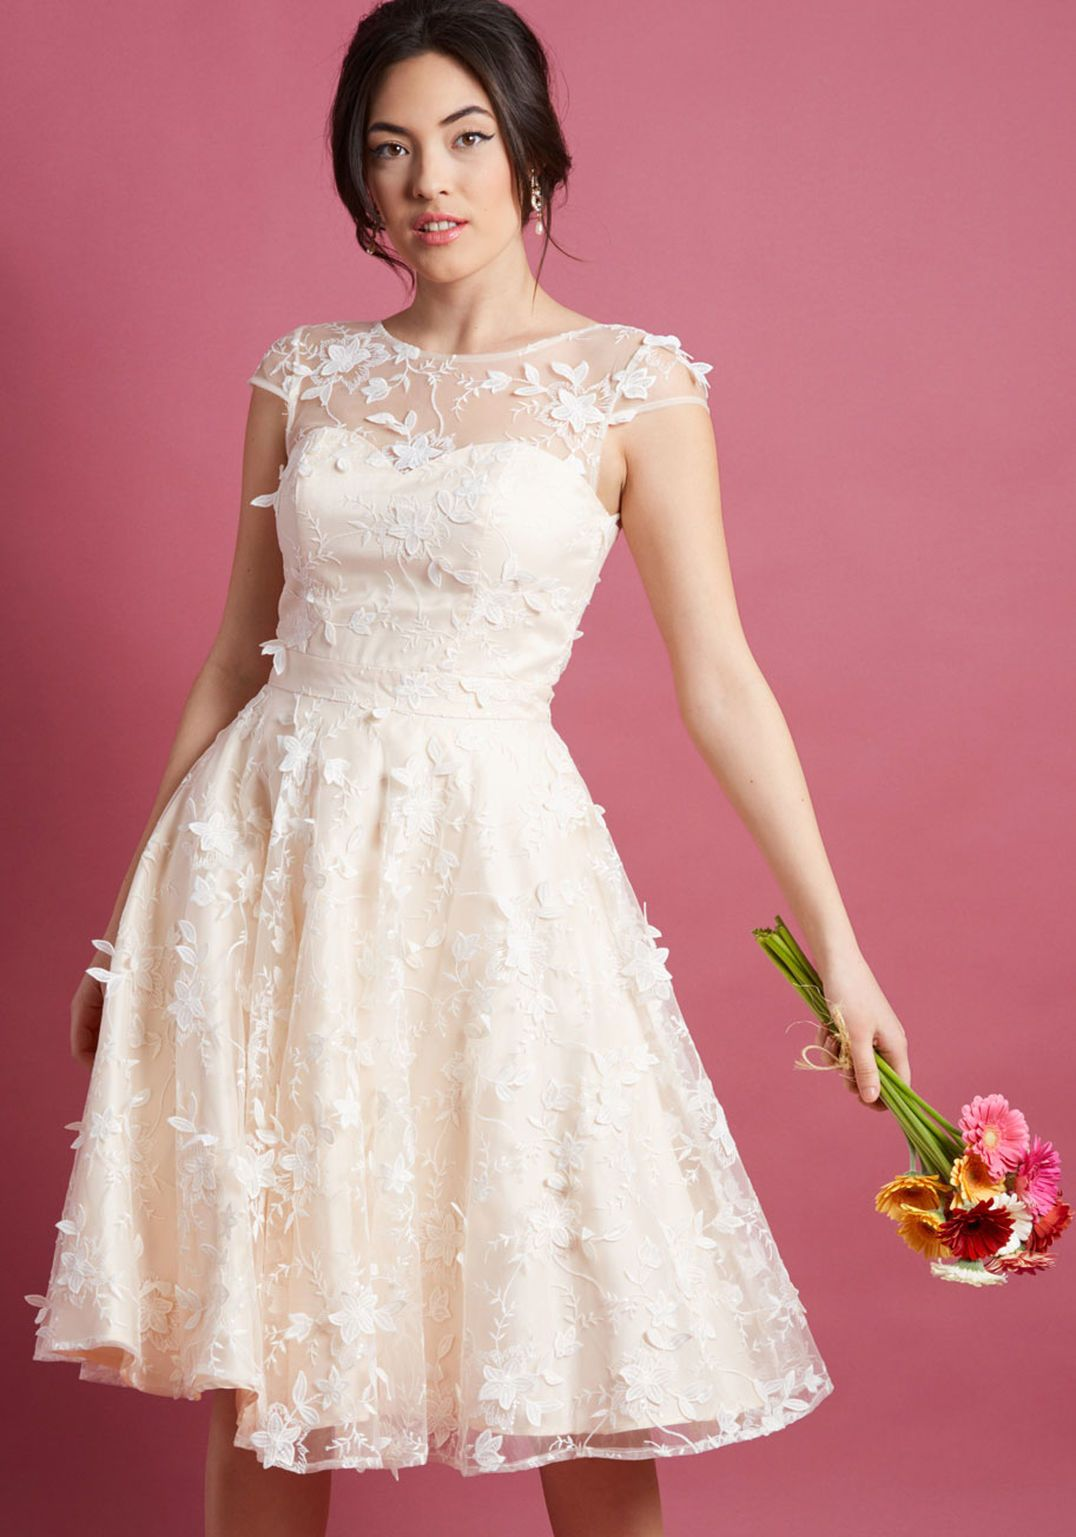 Best affordable wedding dress shops london  Chi Chi London Eyes on the Bride ALine Dress in Posy  Wedding